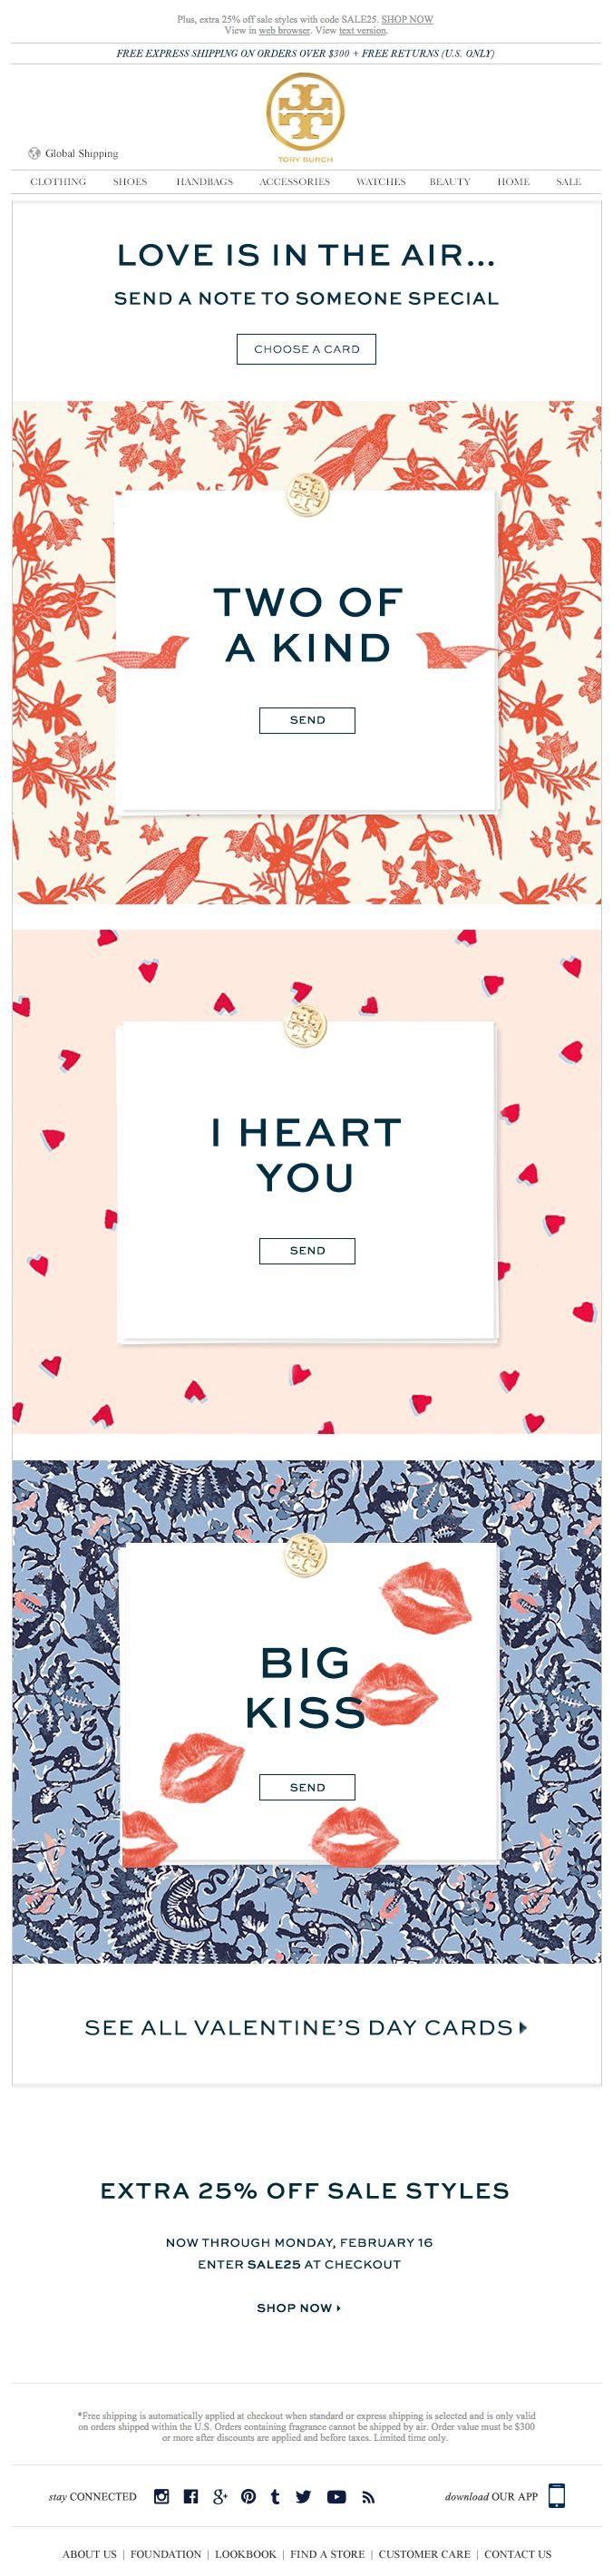 Tory Burch Valentine's Day email 2015